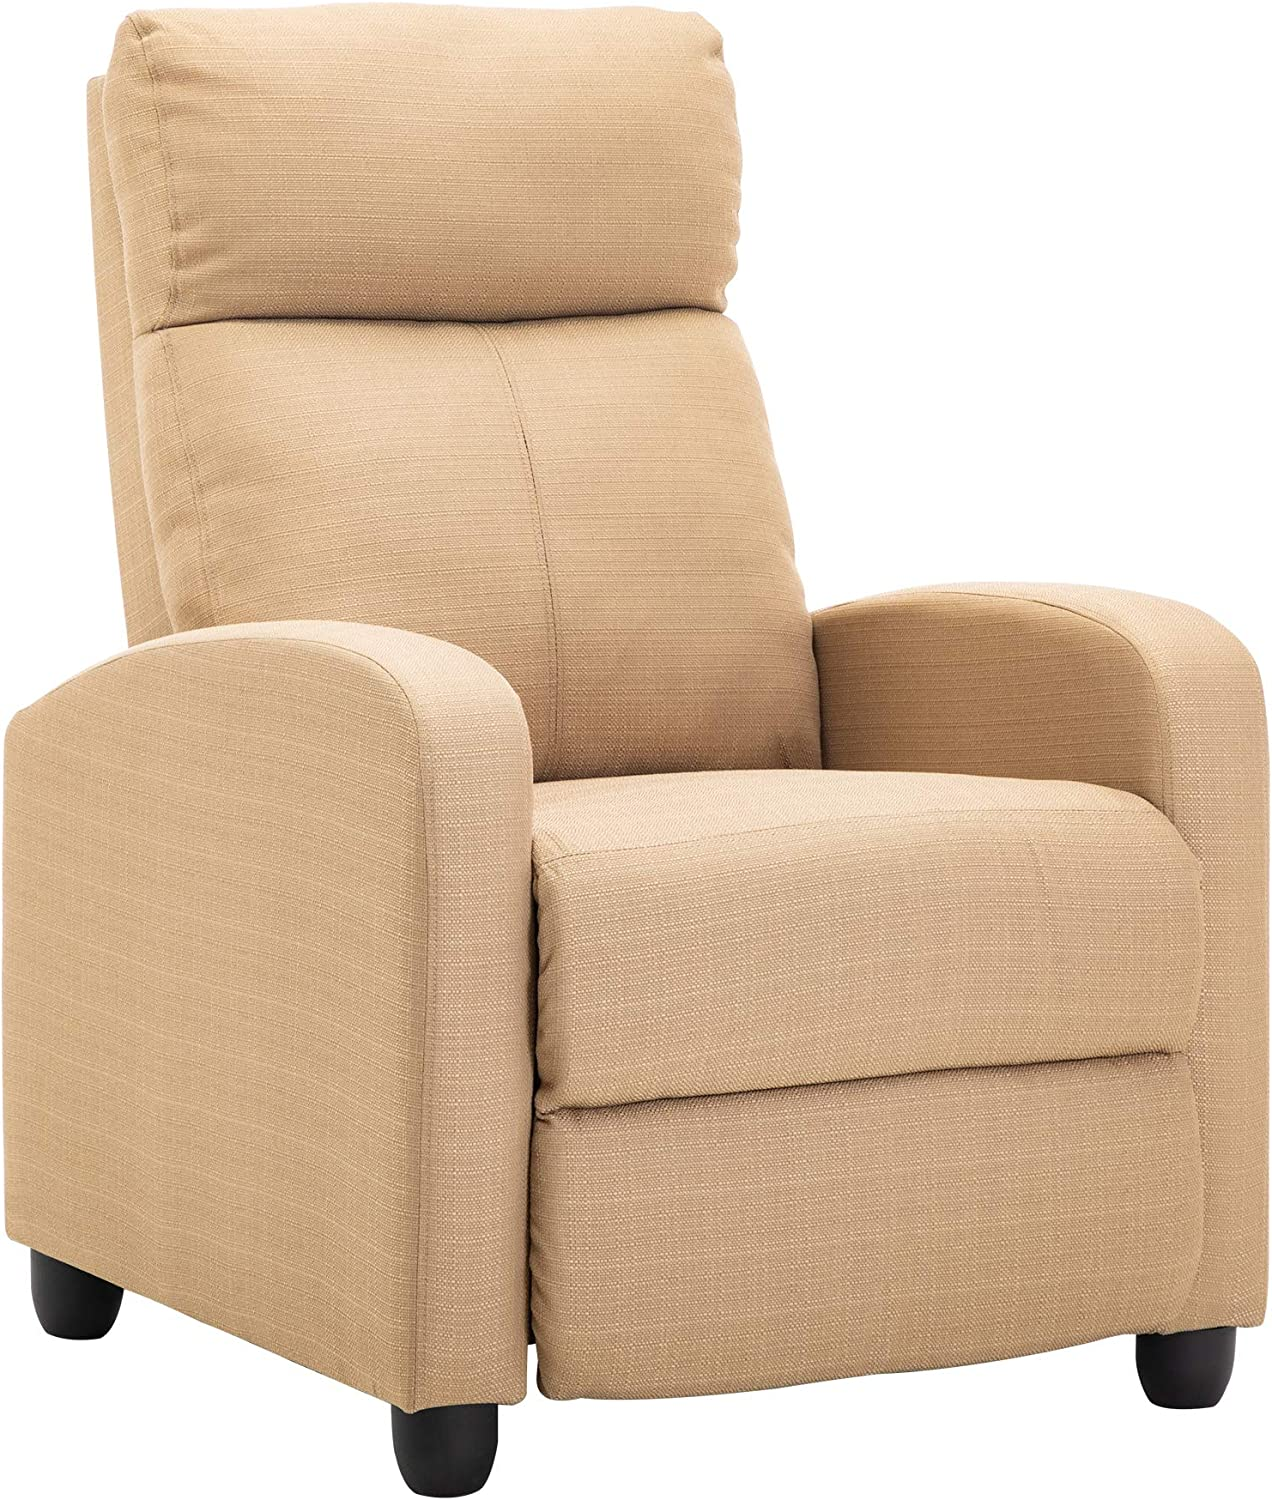 LSSBOUGHT Fabric Recliner Chair Adjustable Home Theater Single Recliner Sofa with Thick Seat Cushion and Backrest Modern Living Room Recliners, Beige